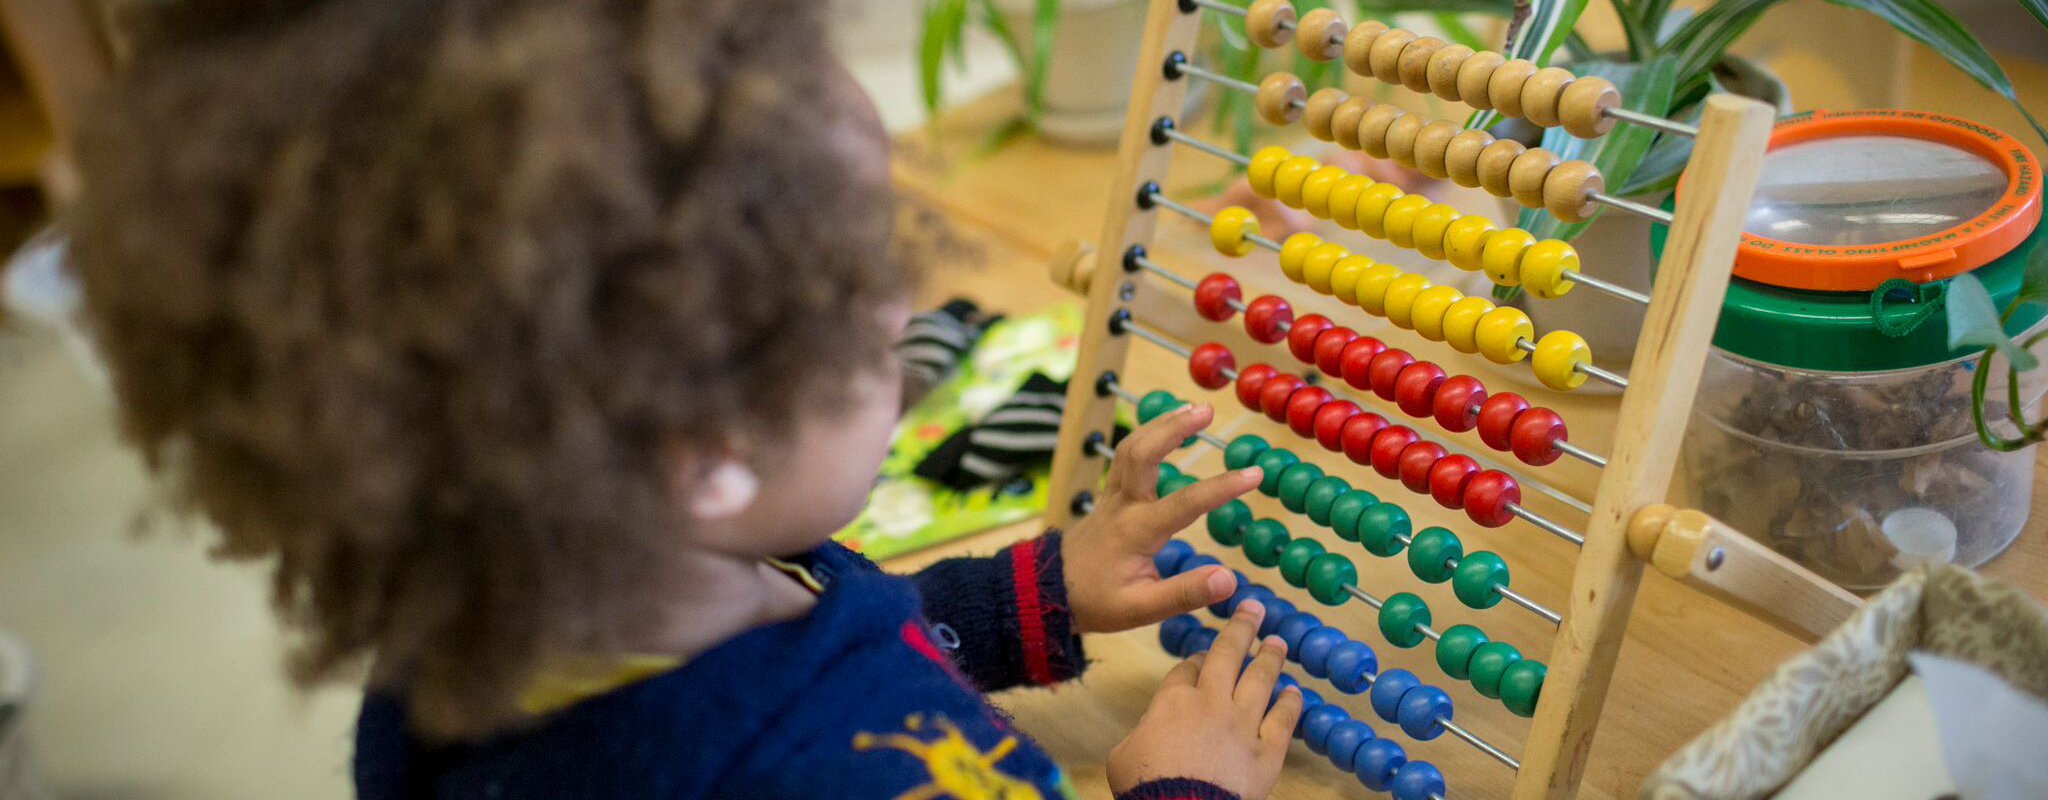 A preschool student counts using an abacus.